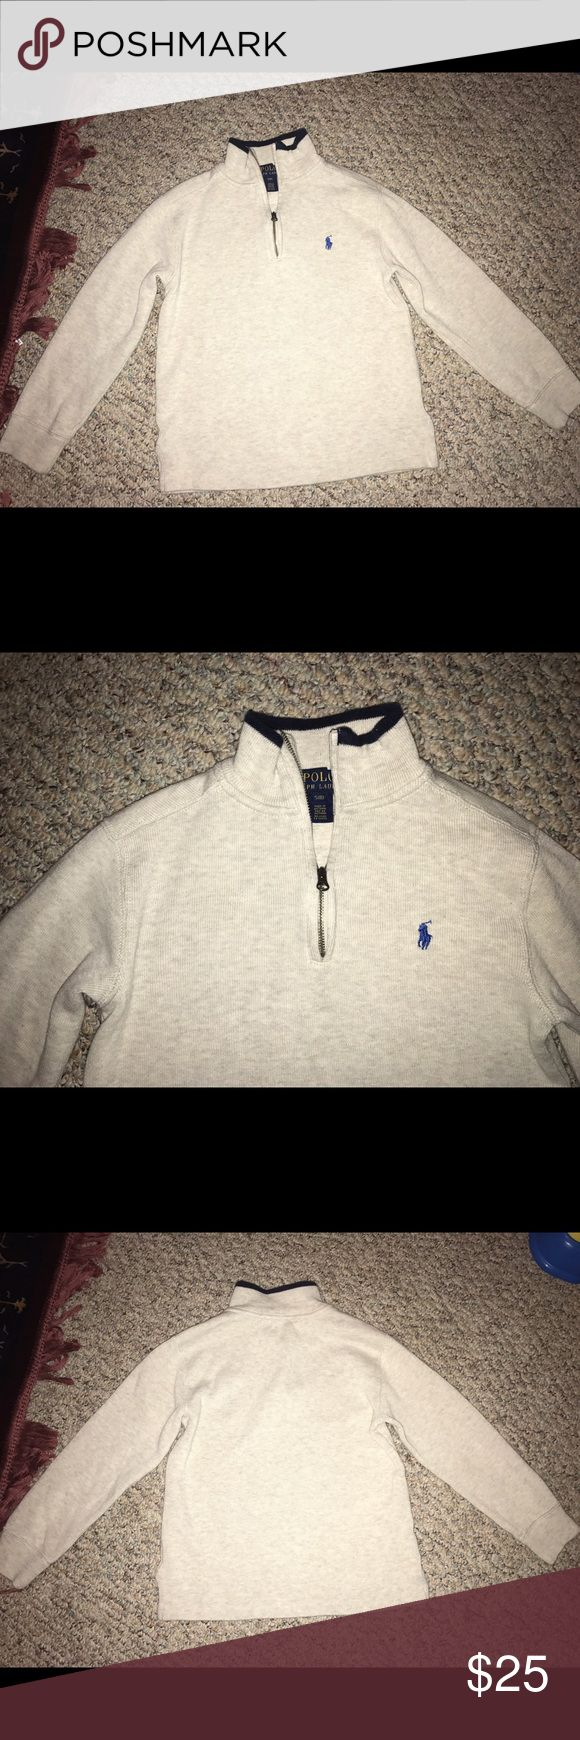 Ralph Lauren Polo Sweater Ralph Lauren Polo Boys half zip sweater. Size 8 boys. Ralph Lauren Shirts & Tops Sweaters